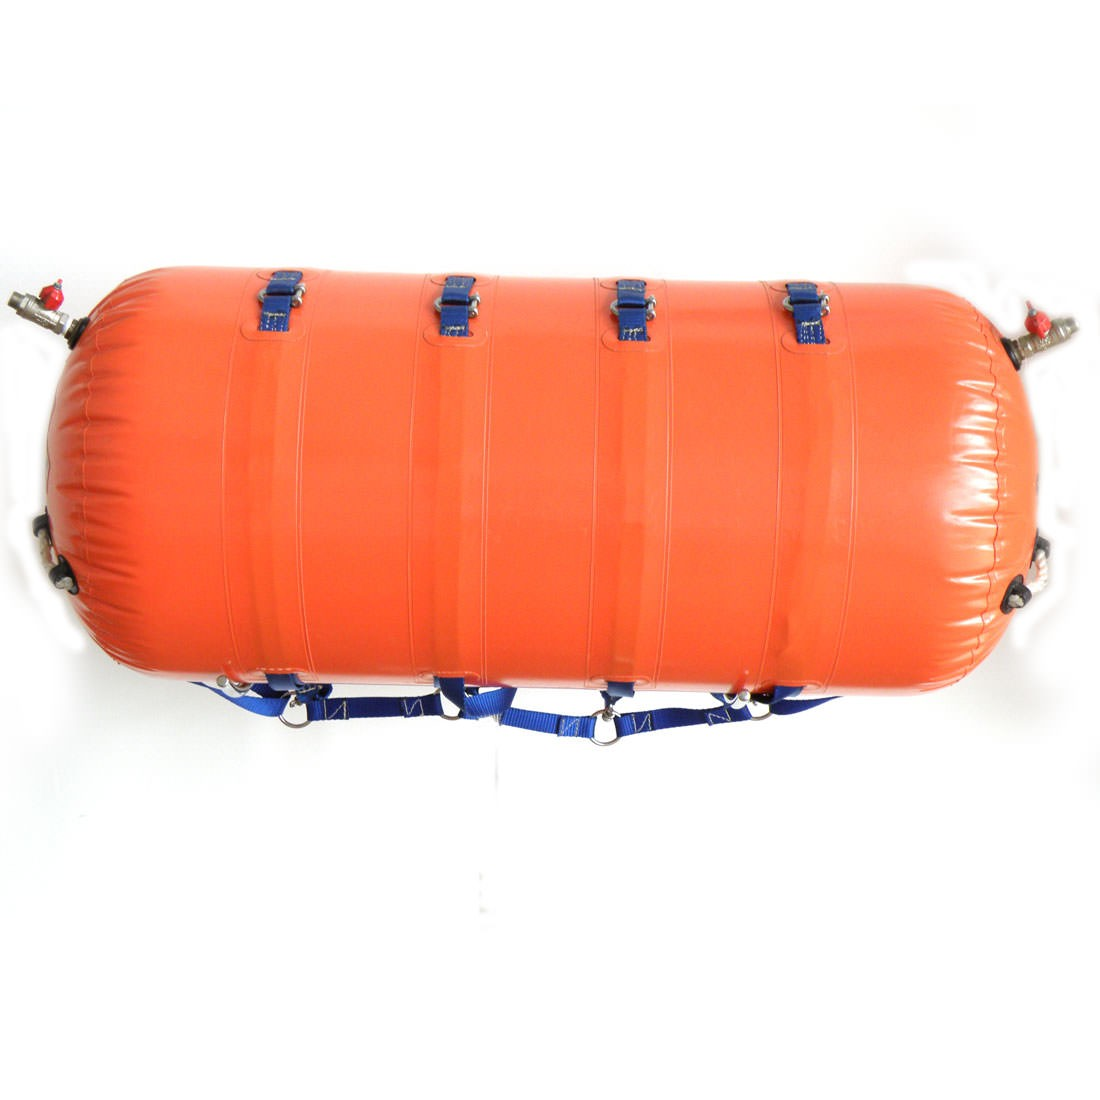 Seaflex 2 Ton Inflatable Buoyancy Unit